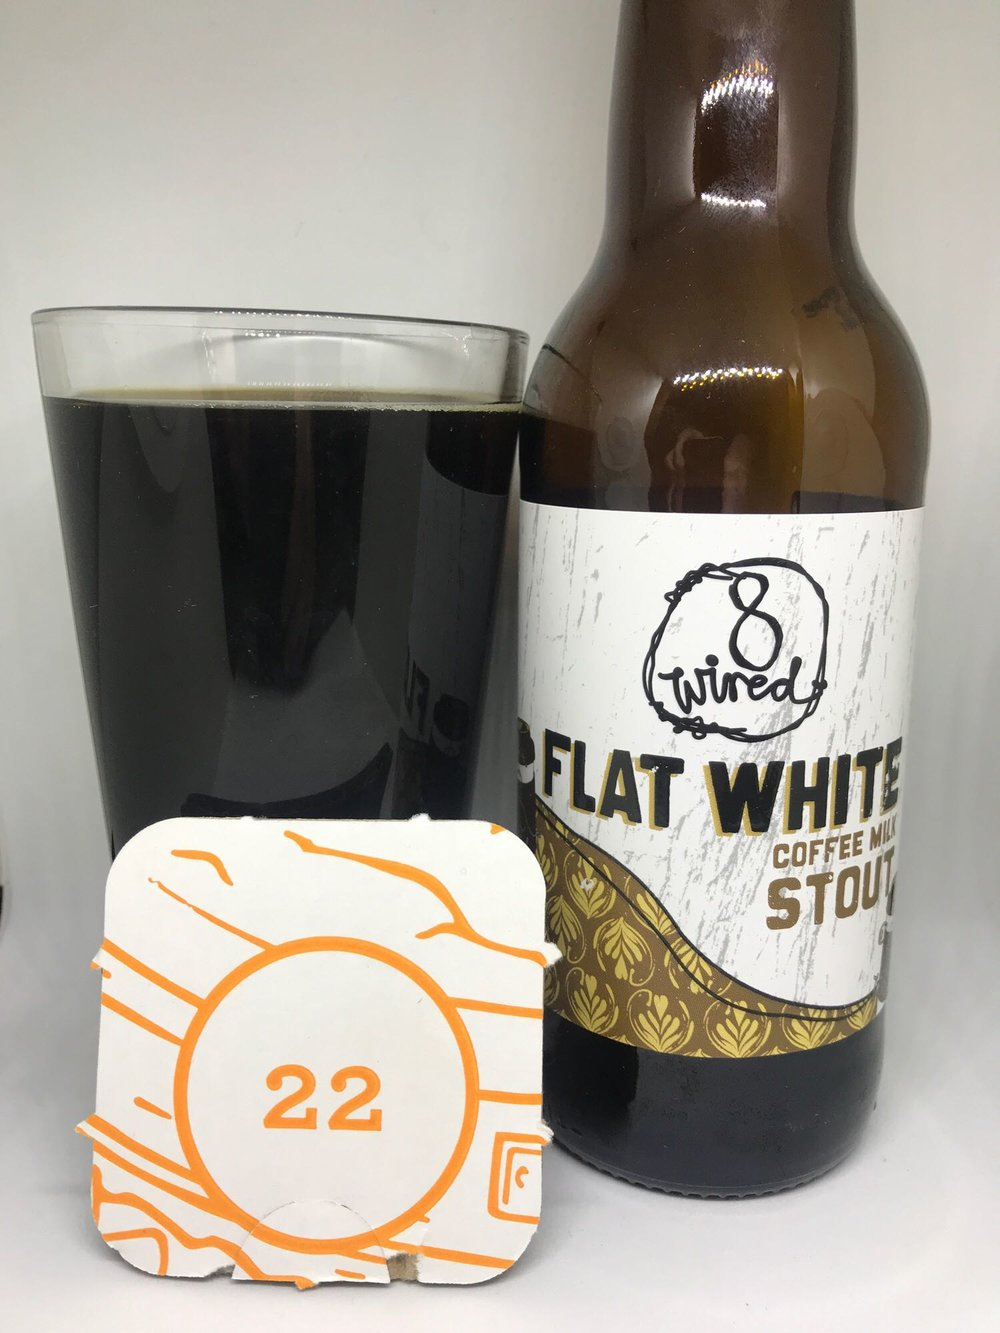 Day Twenty Two: Flat White - Milk Stout 5.5% // 8 Wired Brewing Co.  - This is the fourth coffee based stout in the calendar and it probably ranks somewhere in the middle of the pack. It tastes just like a flat white so they've nailed that but is a little bit too carbonated and lacks the bitter edge to elevate it beyond being just ok. It's also a bit thin. I keep saying this a lot but it does make a difference - a stout that has that thick mouthfeel (sorry, I hate that word) just gives it a silkier and smoother finish. I don't really have anything else to add to this beer. I think I'm getting calendar fatigue and coffee stout boredom.